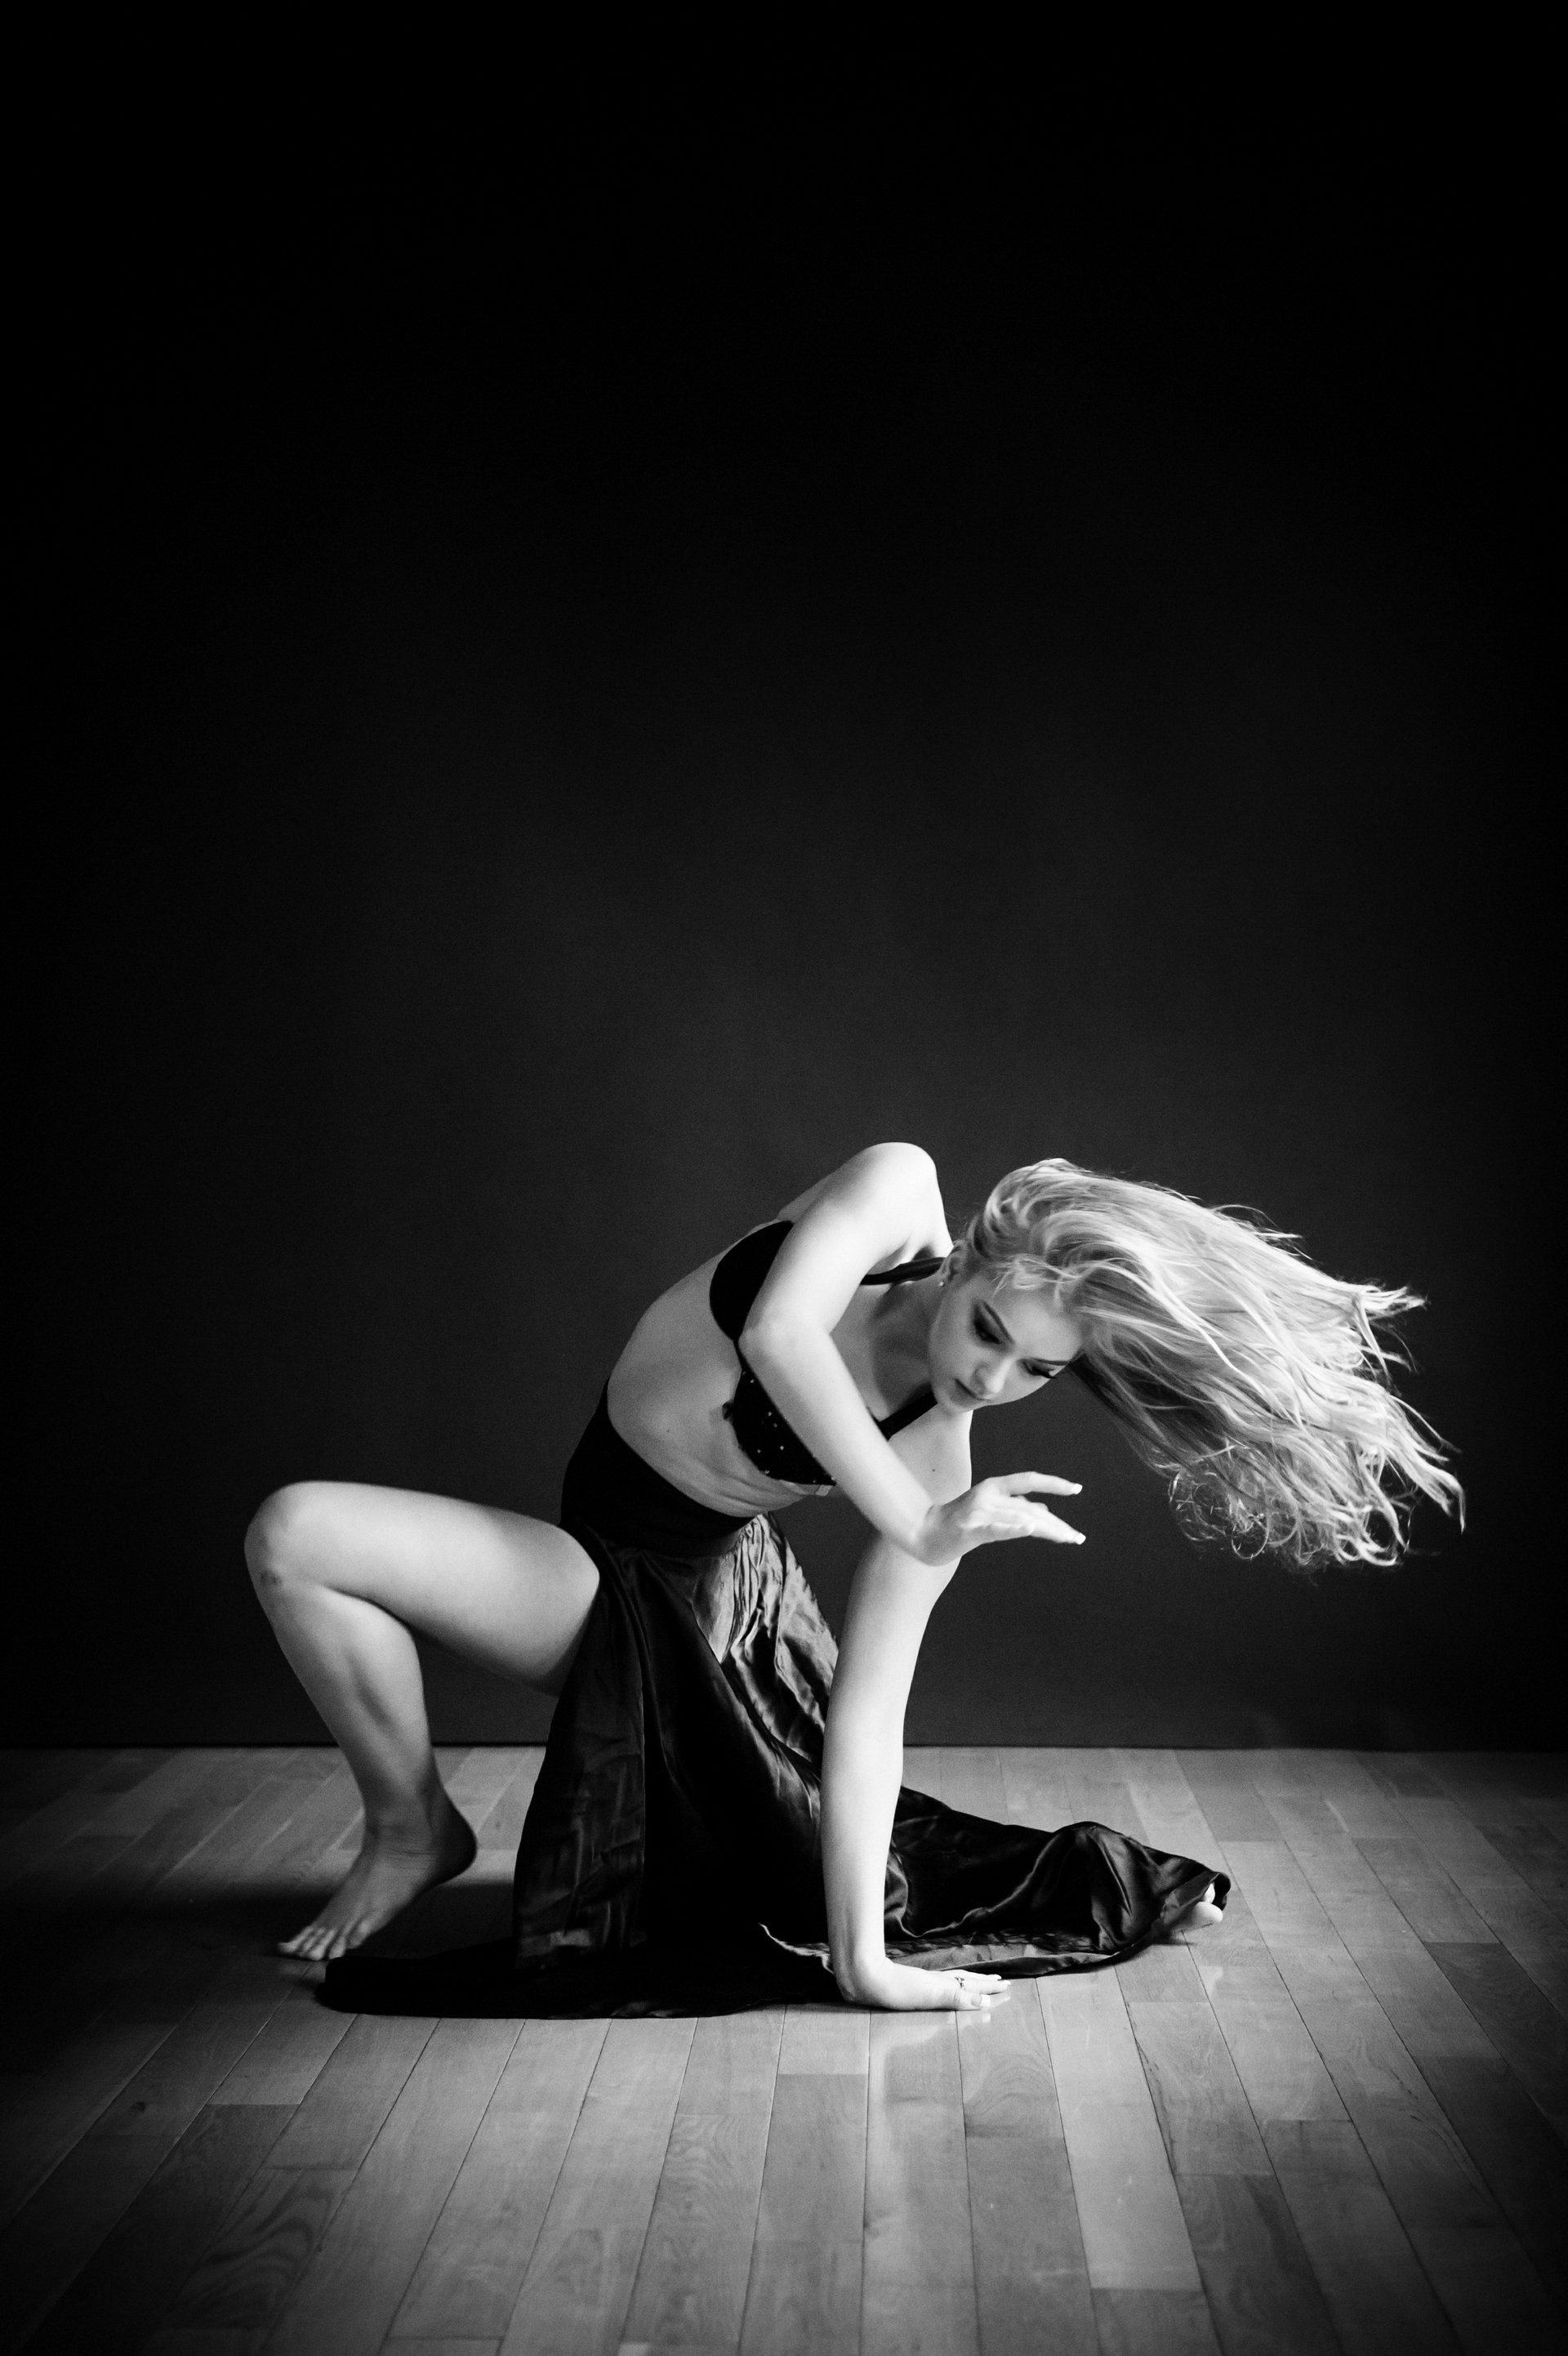 nEO_IMG_Xing Photography Soul of Dance - Haley-21-BW.jpg